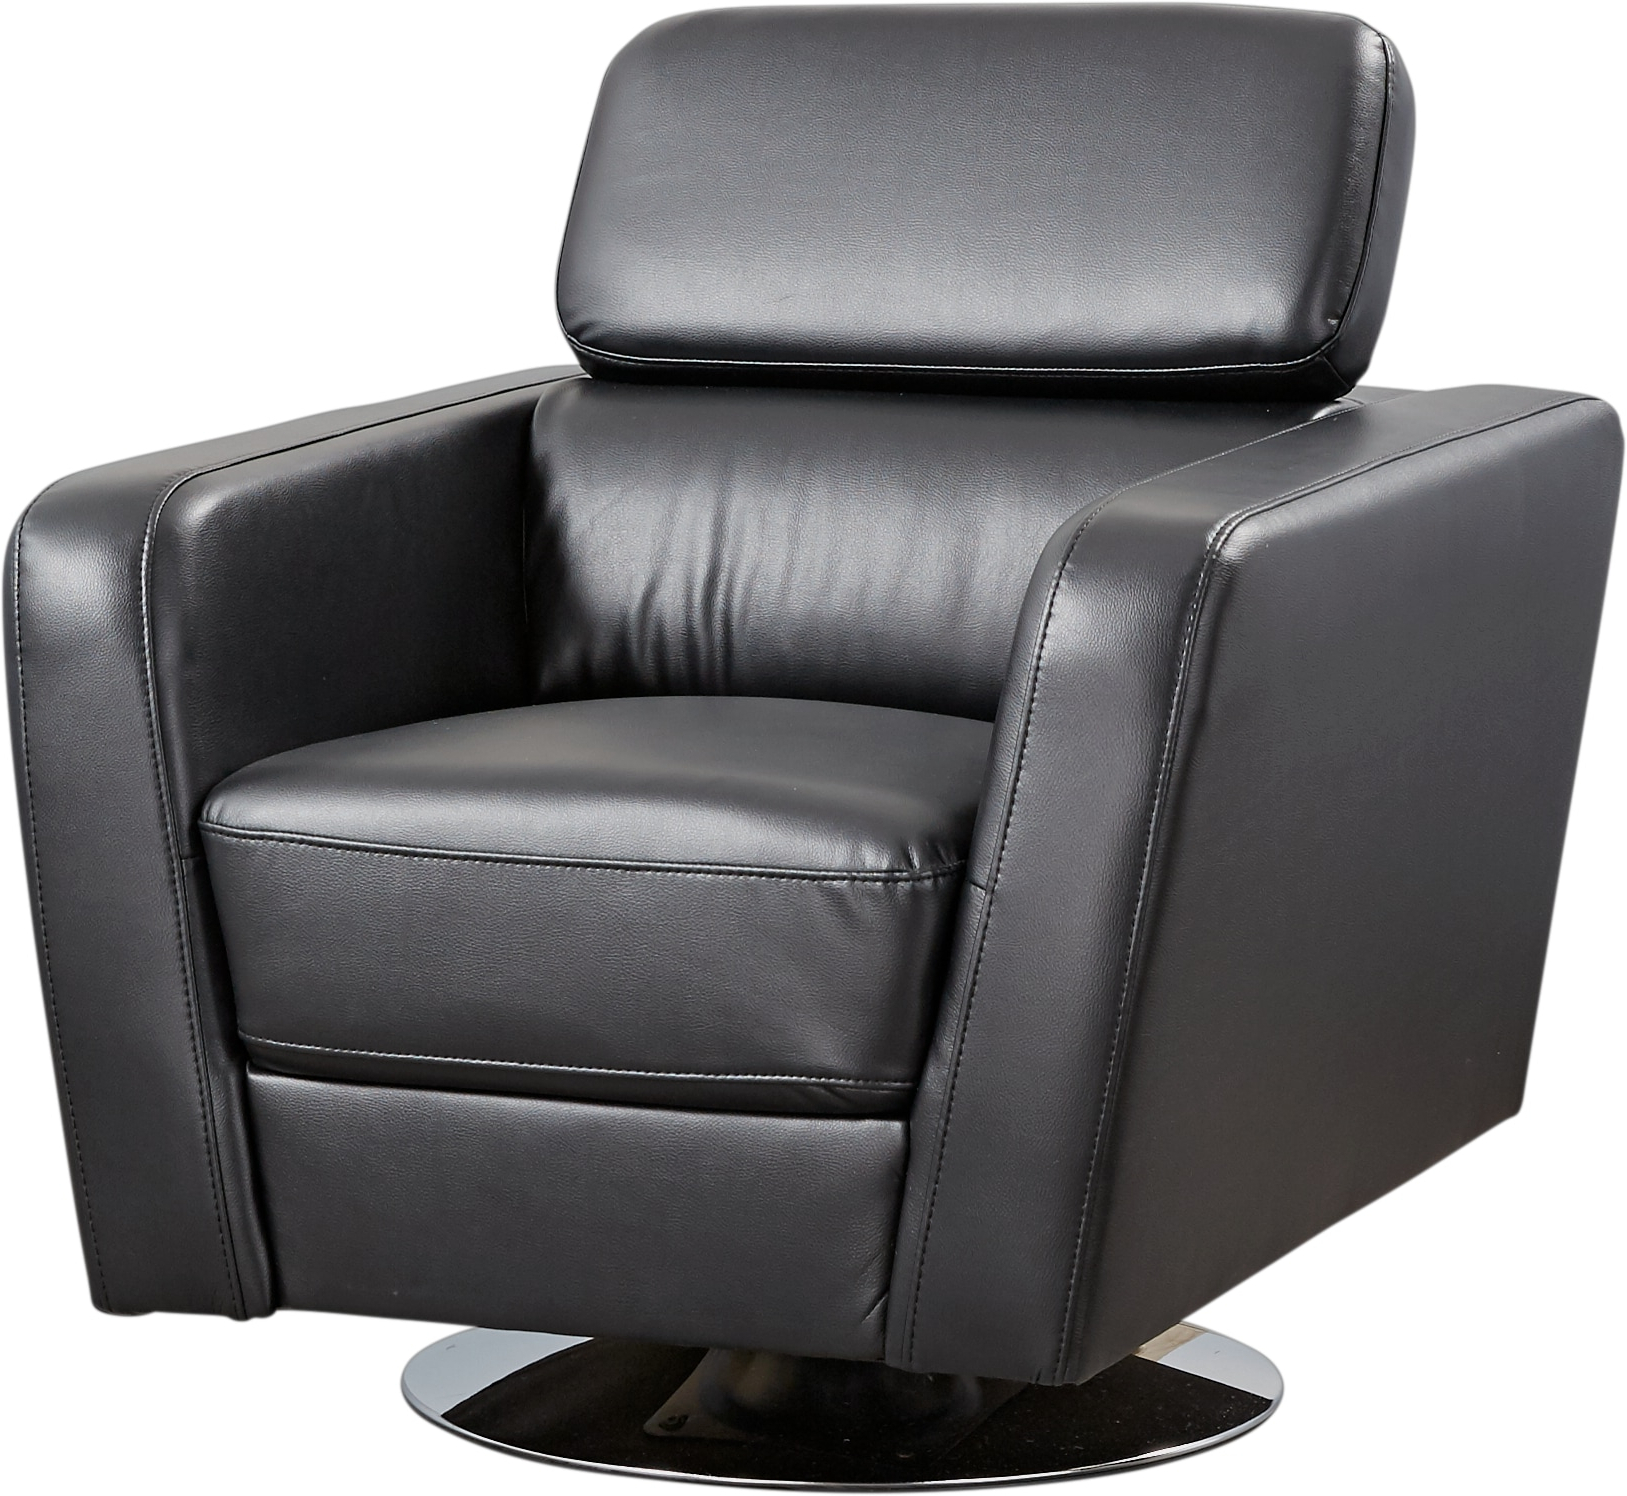 Dellinger Black Swivel Chair – Accent Chairs (Black) Pertaining To Most Current Leather Black Swivel Chairs (Gallery 11 of 20)